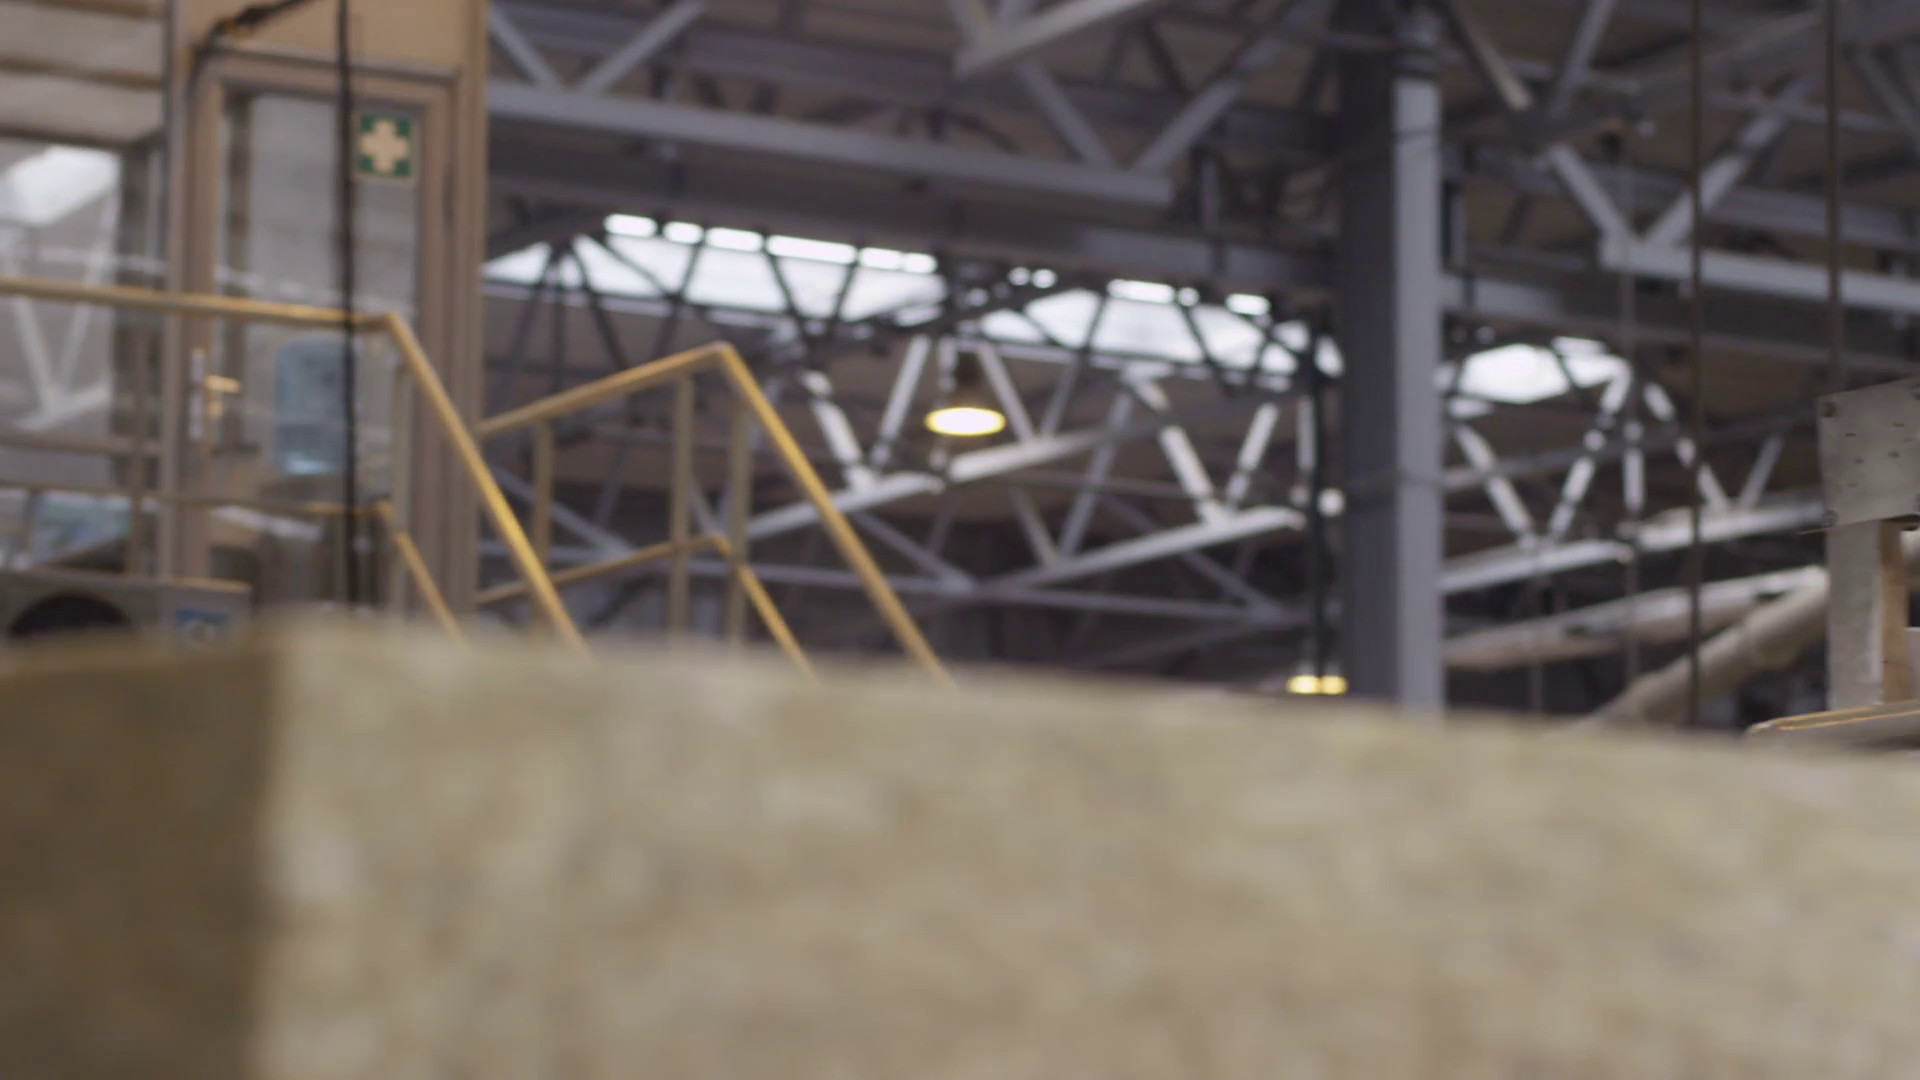 1920x1080 Worker Controls Soundproofing and Insulation Production Stock Video Footage  - Storyblocks Video